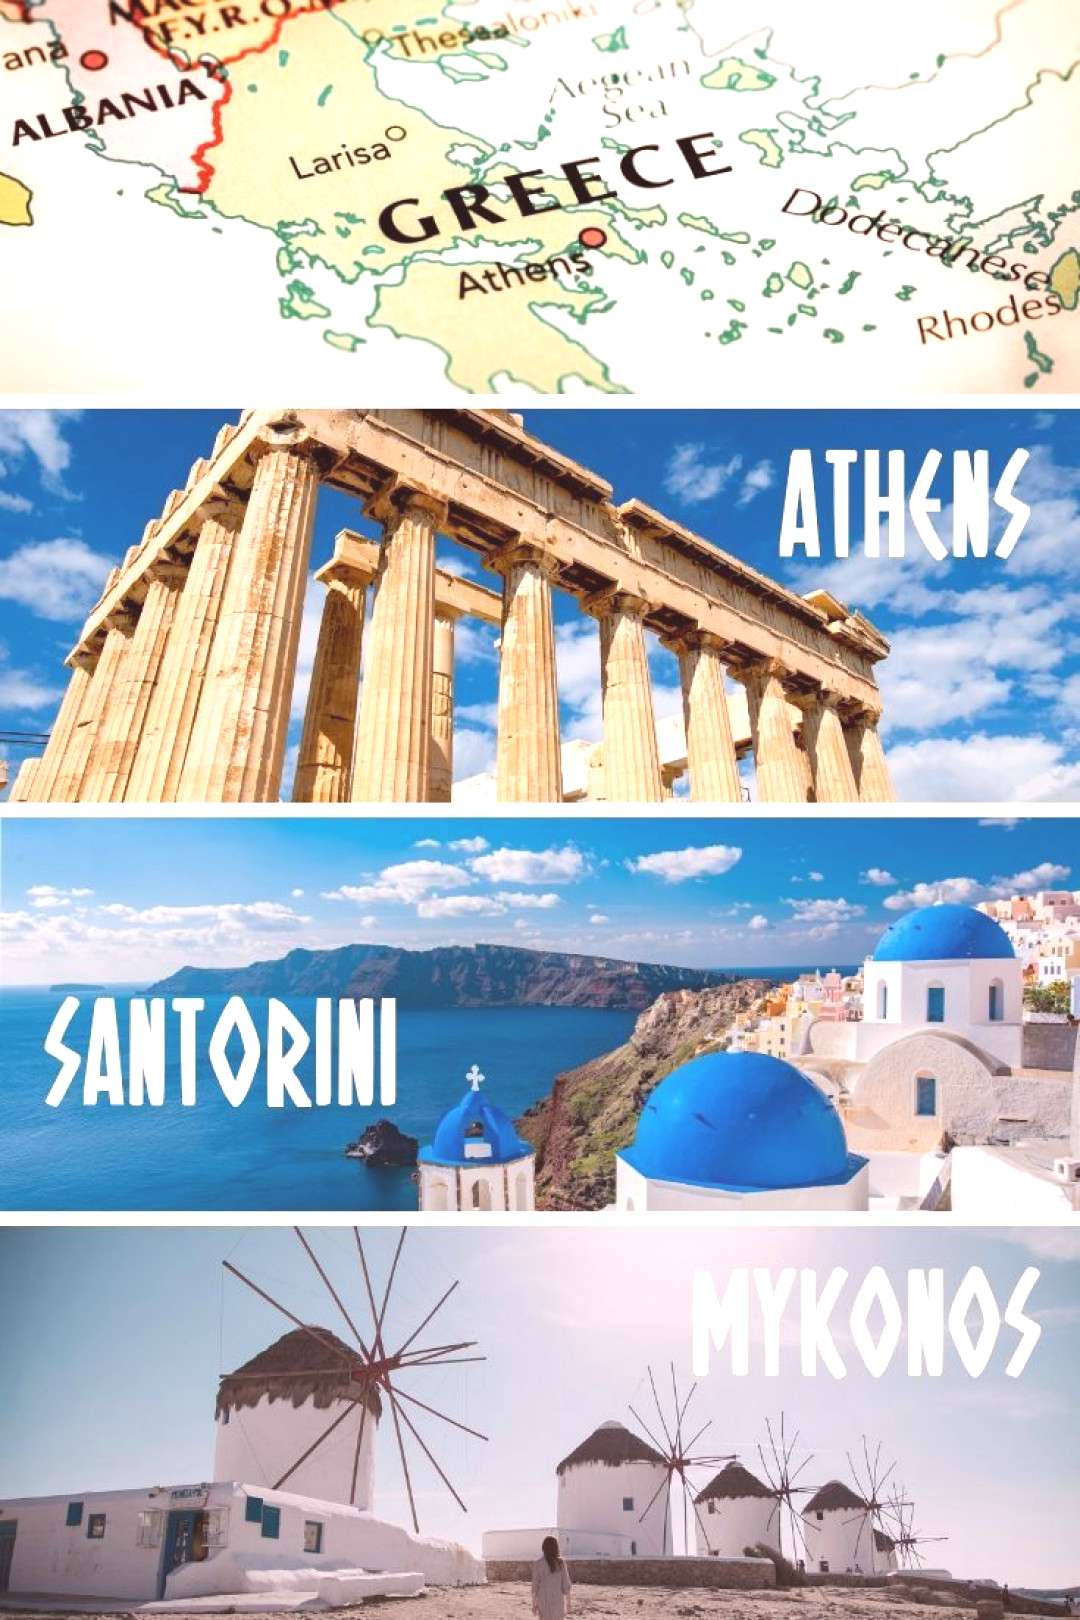 Greece Travel Itinerary A 7 day Athens -Santorini - Mykonos itinerary for first time travelers to